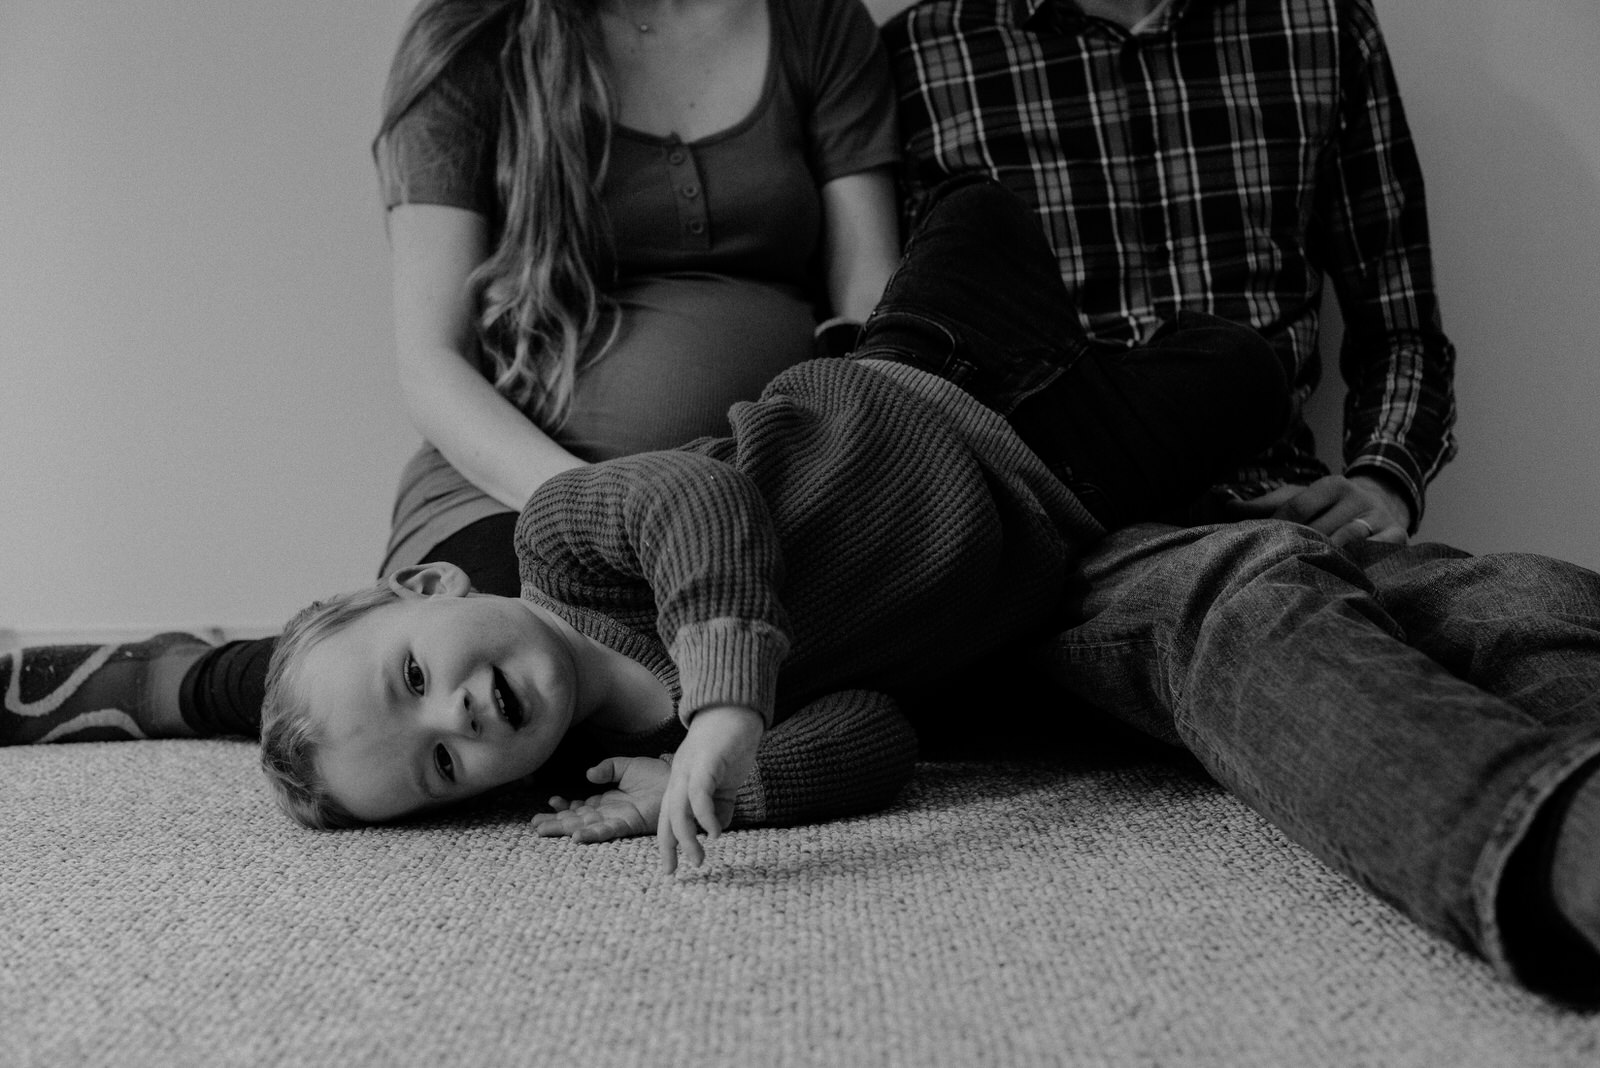 Black and white photo of a toddler laying on his parents lap with his mothers pregnant baby bump visible in the background taken by maternity photographer canmore jena lee photographs